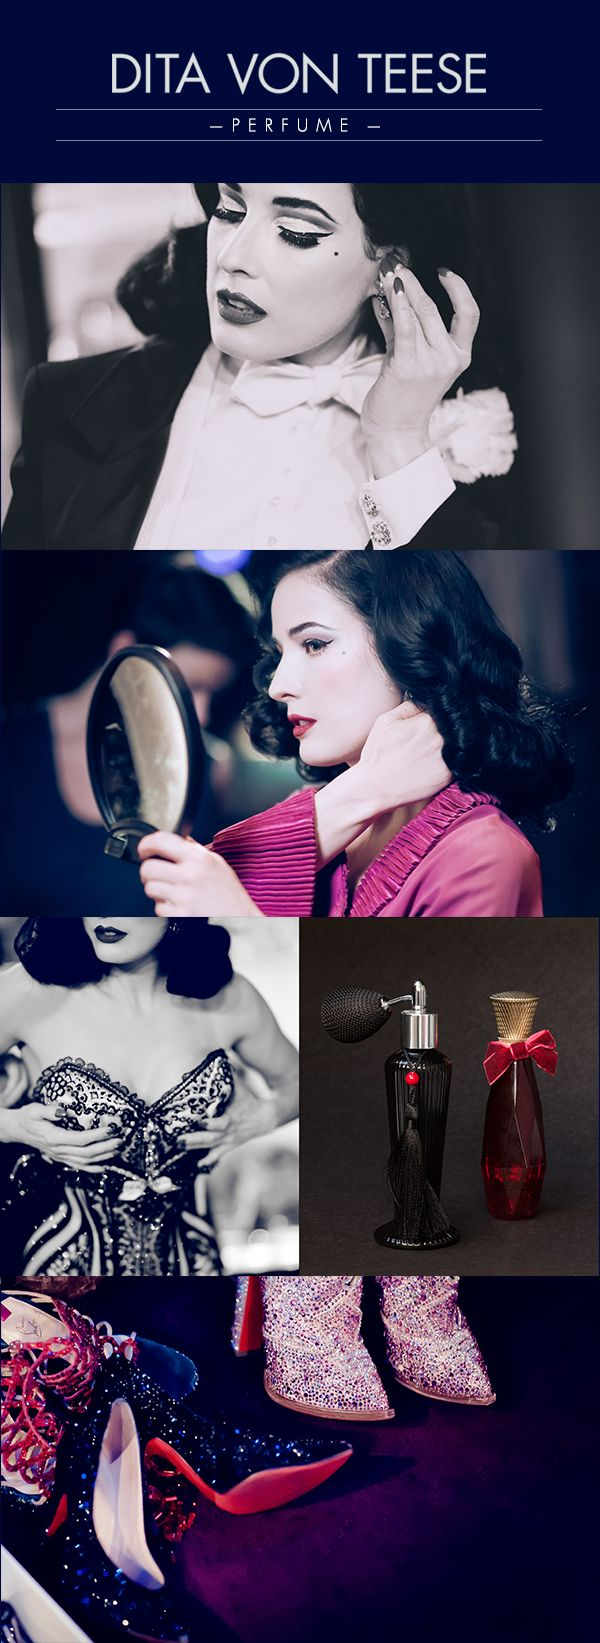 The glamour of Dita Von Teese!